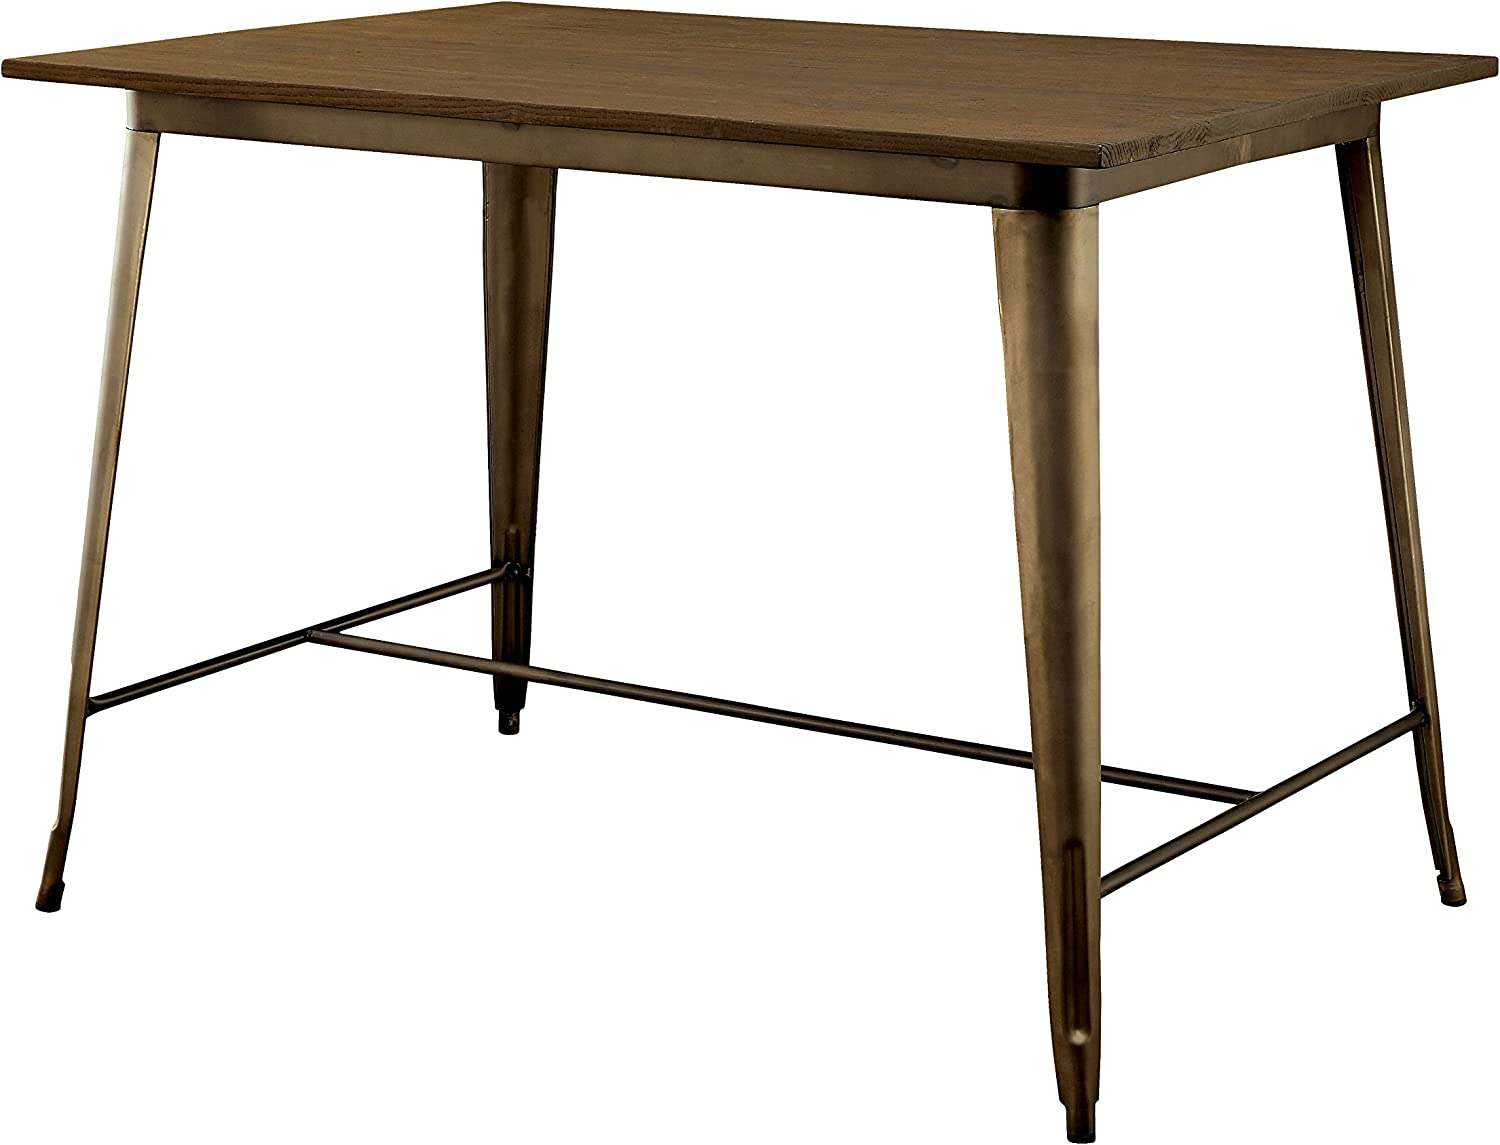 Furniture of America Cadiz Industrial Pub Table